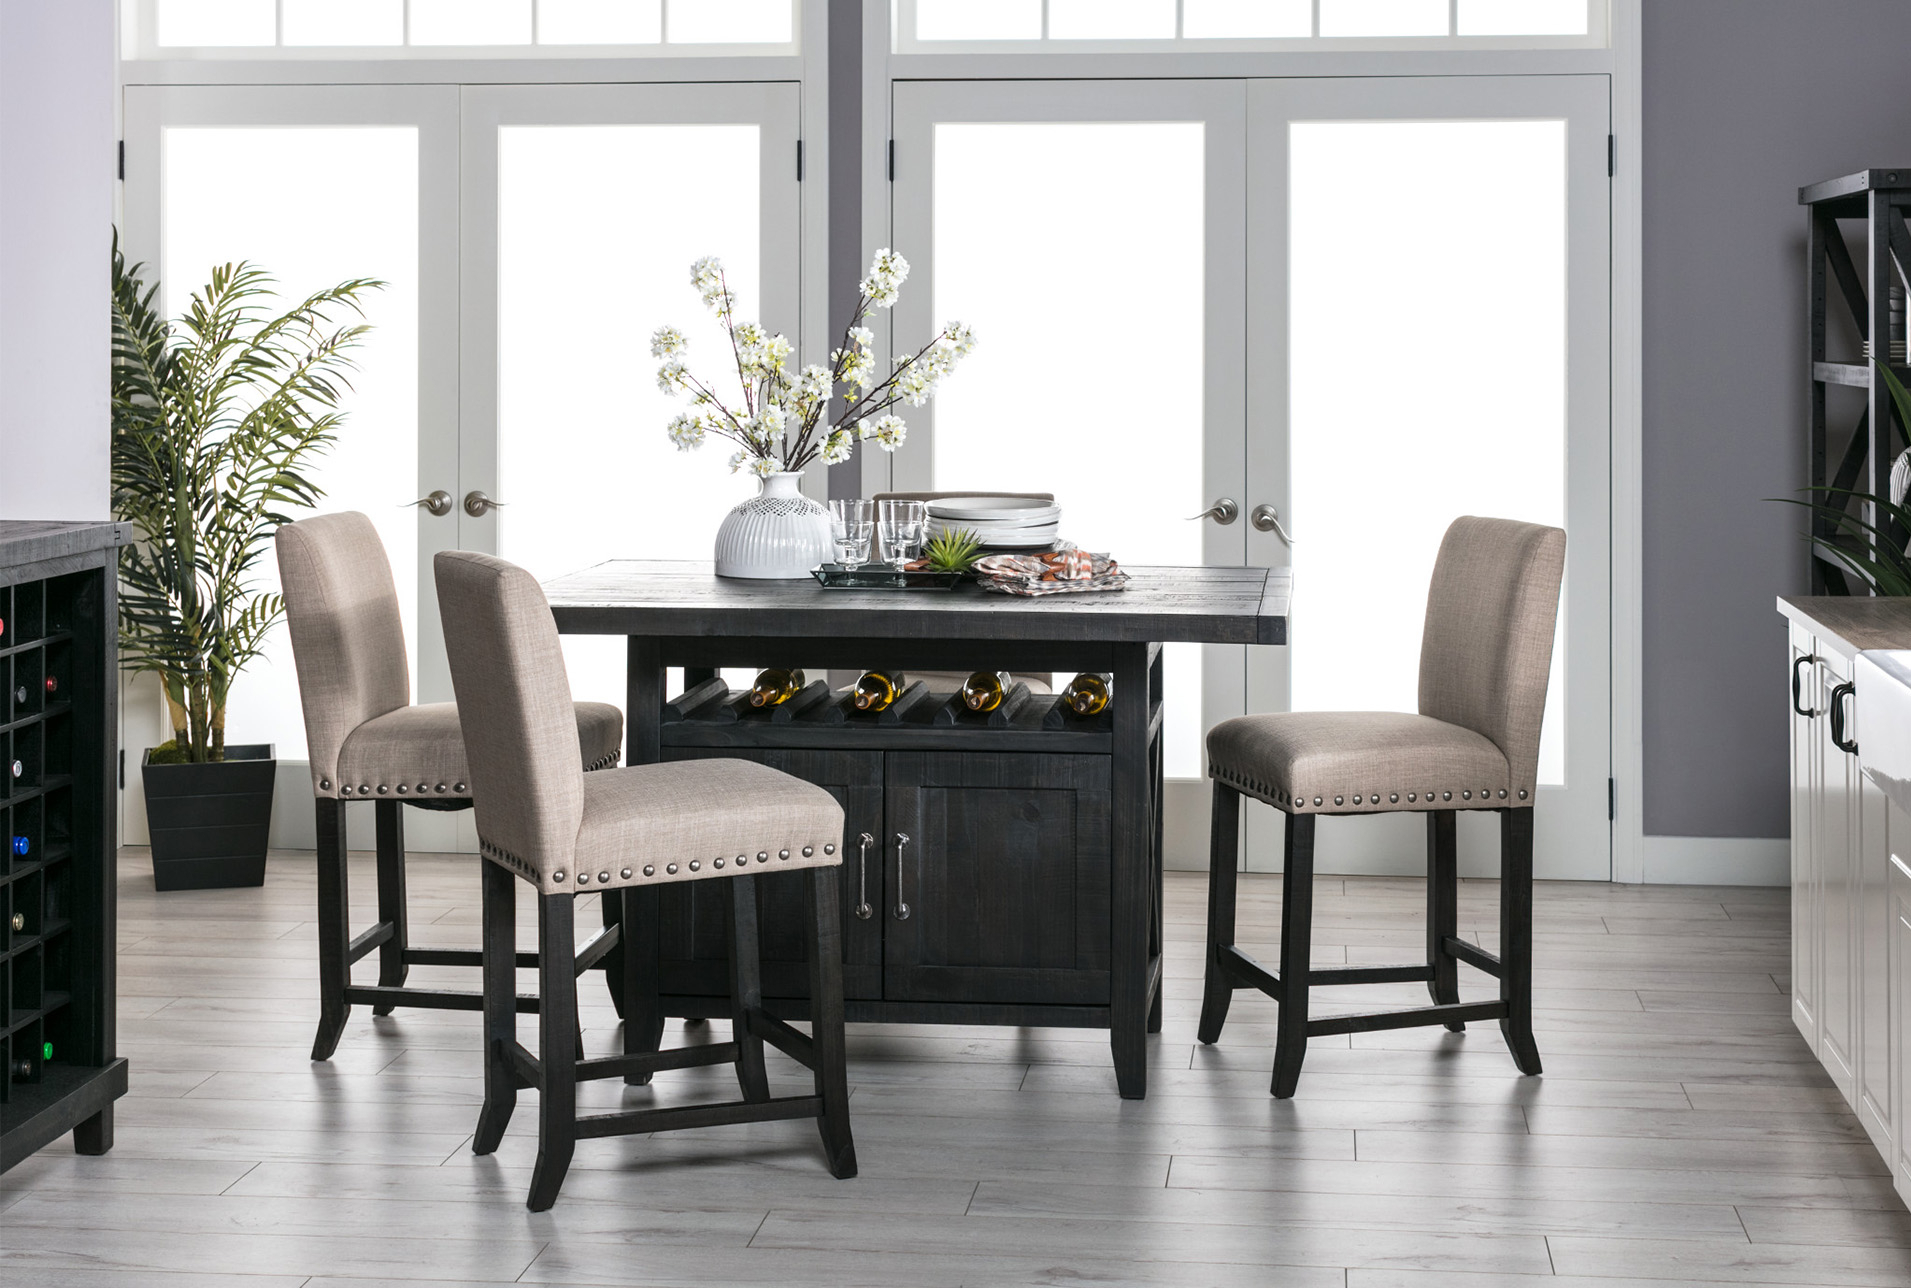 Jaxon 5 Piece Extension Counter Set W/fabric Stools | Products Throughout Best And Newest Jarrod 5 Piece Dining Sets (View 16 of 20)